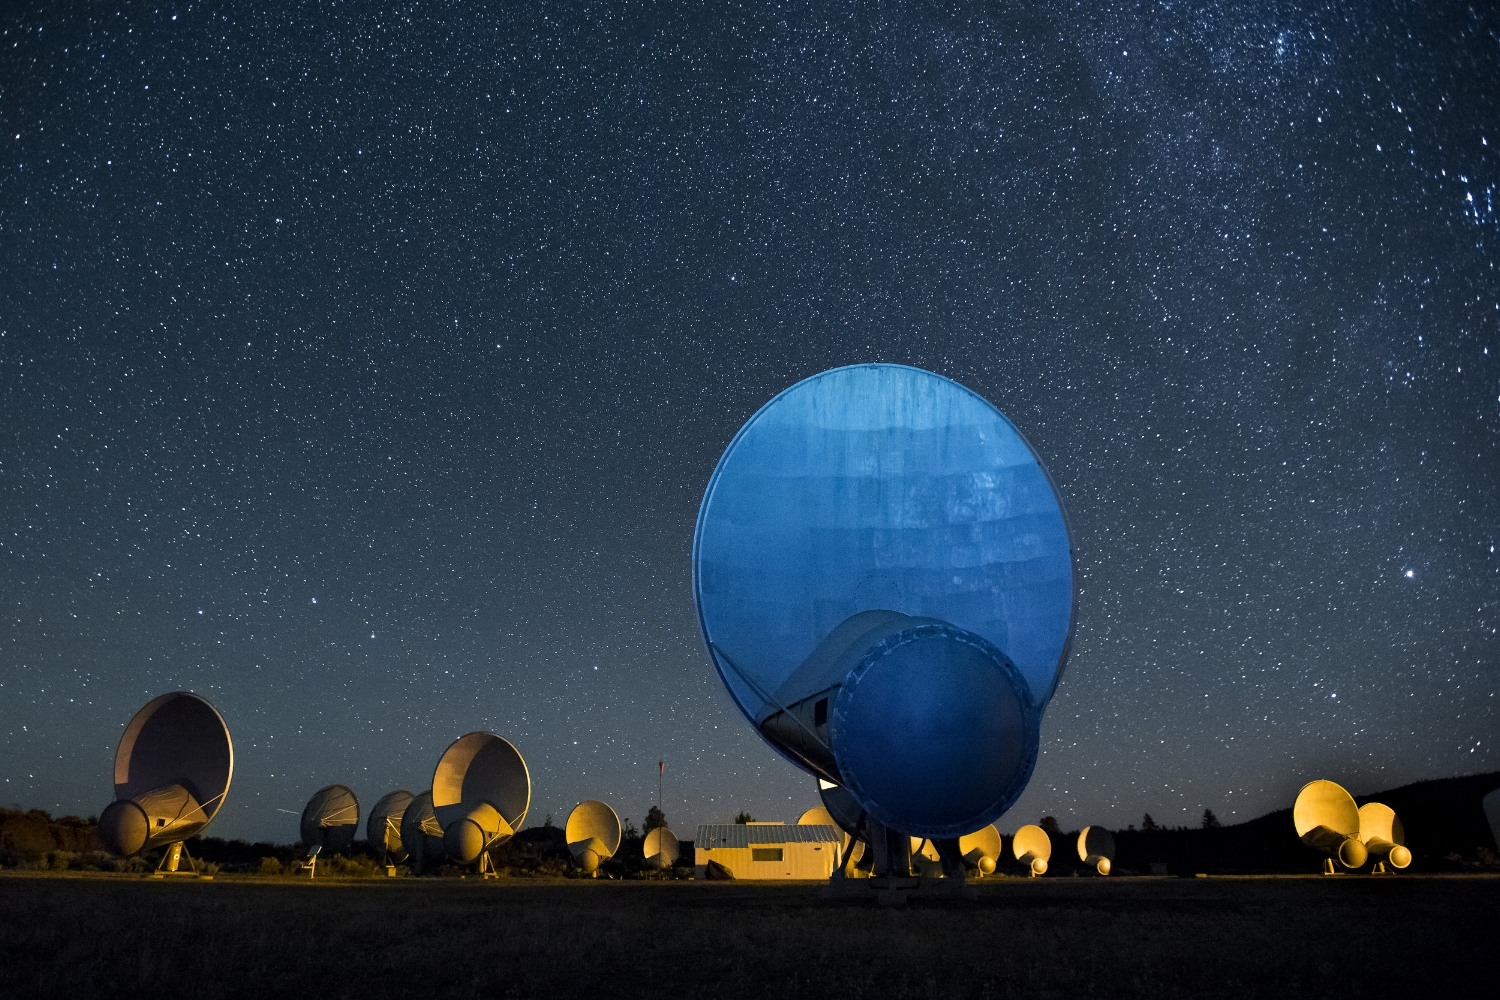 SETI researchers monitor the heavens with a field of radio telescopes at the Allen Telescope Array at the Hat Creek Radio Observatory in Hat Creek northern California on Thursday, September 1, 2016.